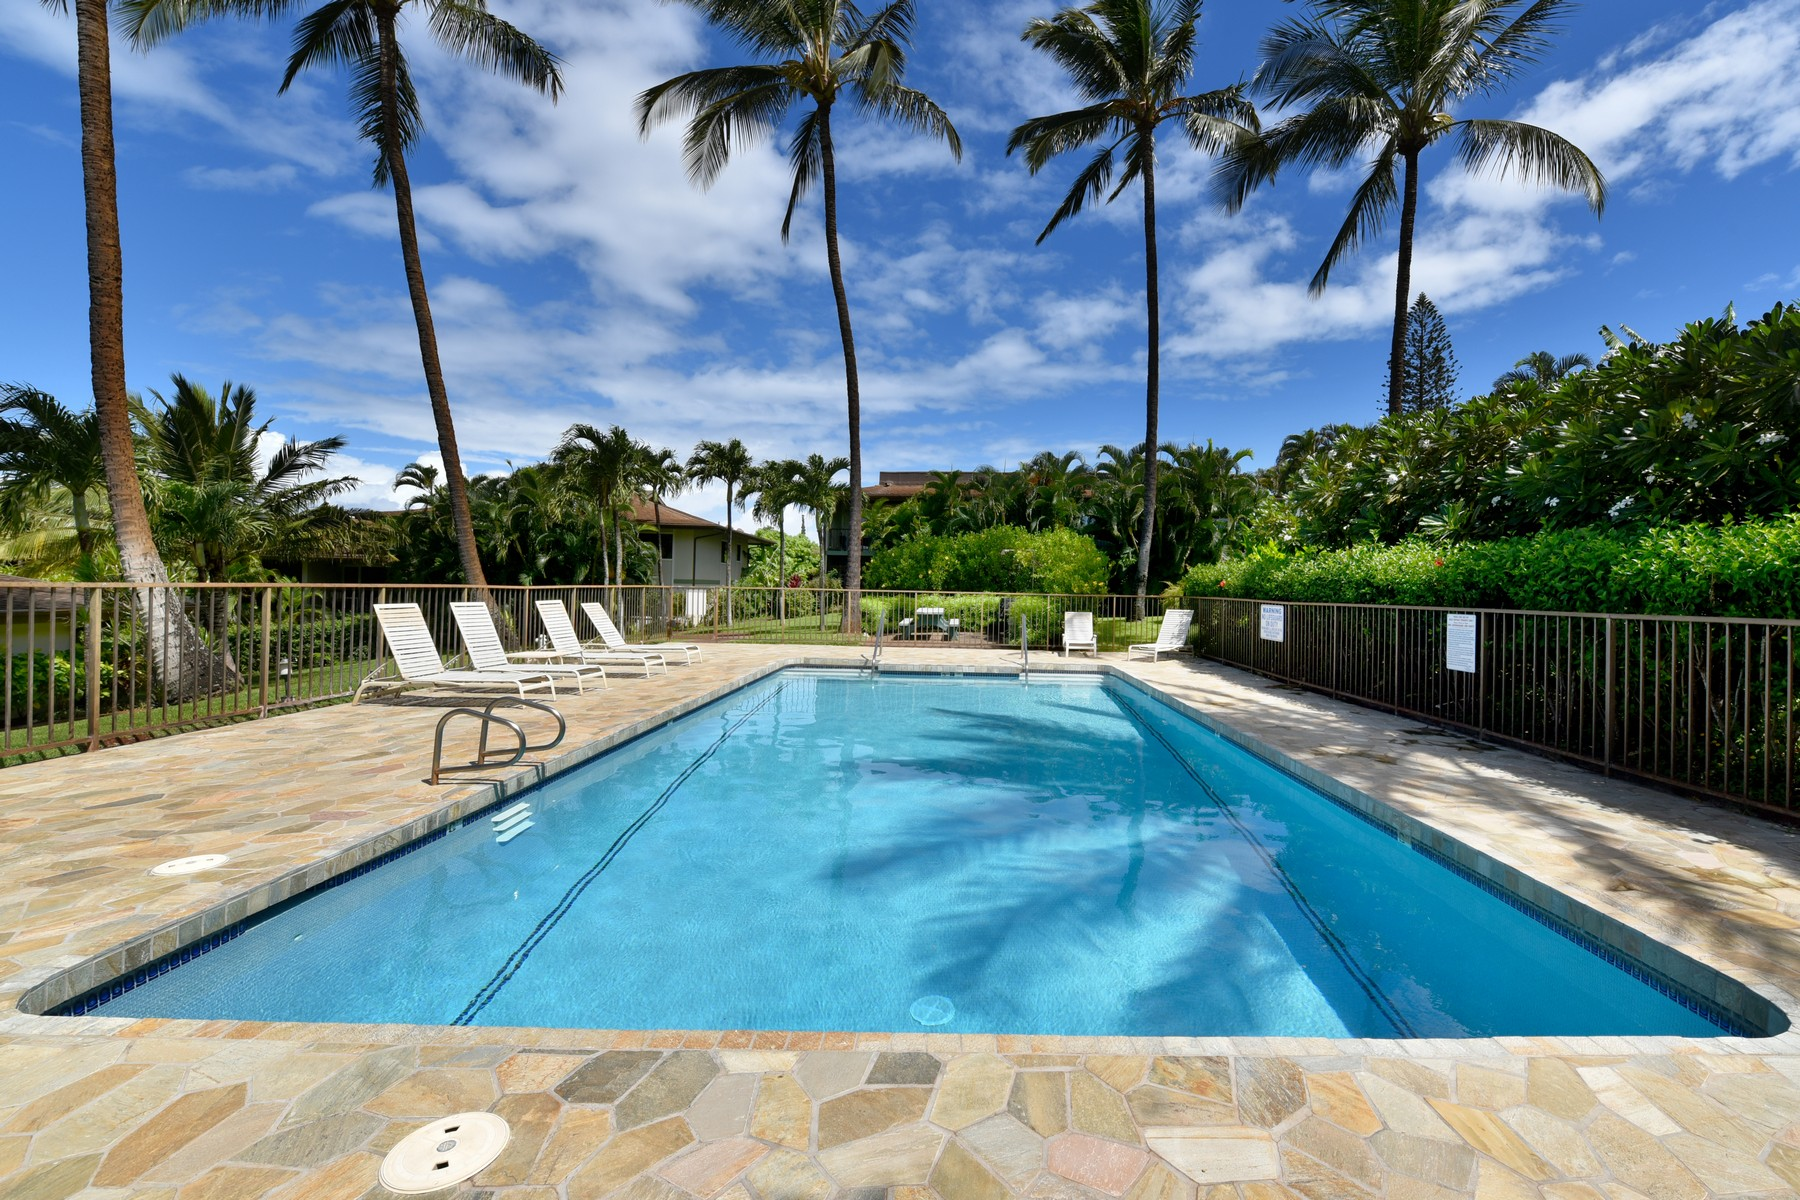 Condominium for Sale at Tropical Living in a Casual Residential Condo 3788 Lower Honoapiilani Road, Hale Royale A209 Lahaina, Hawaii 96761 United States